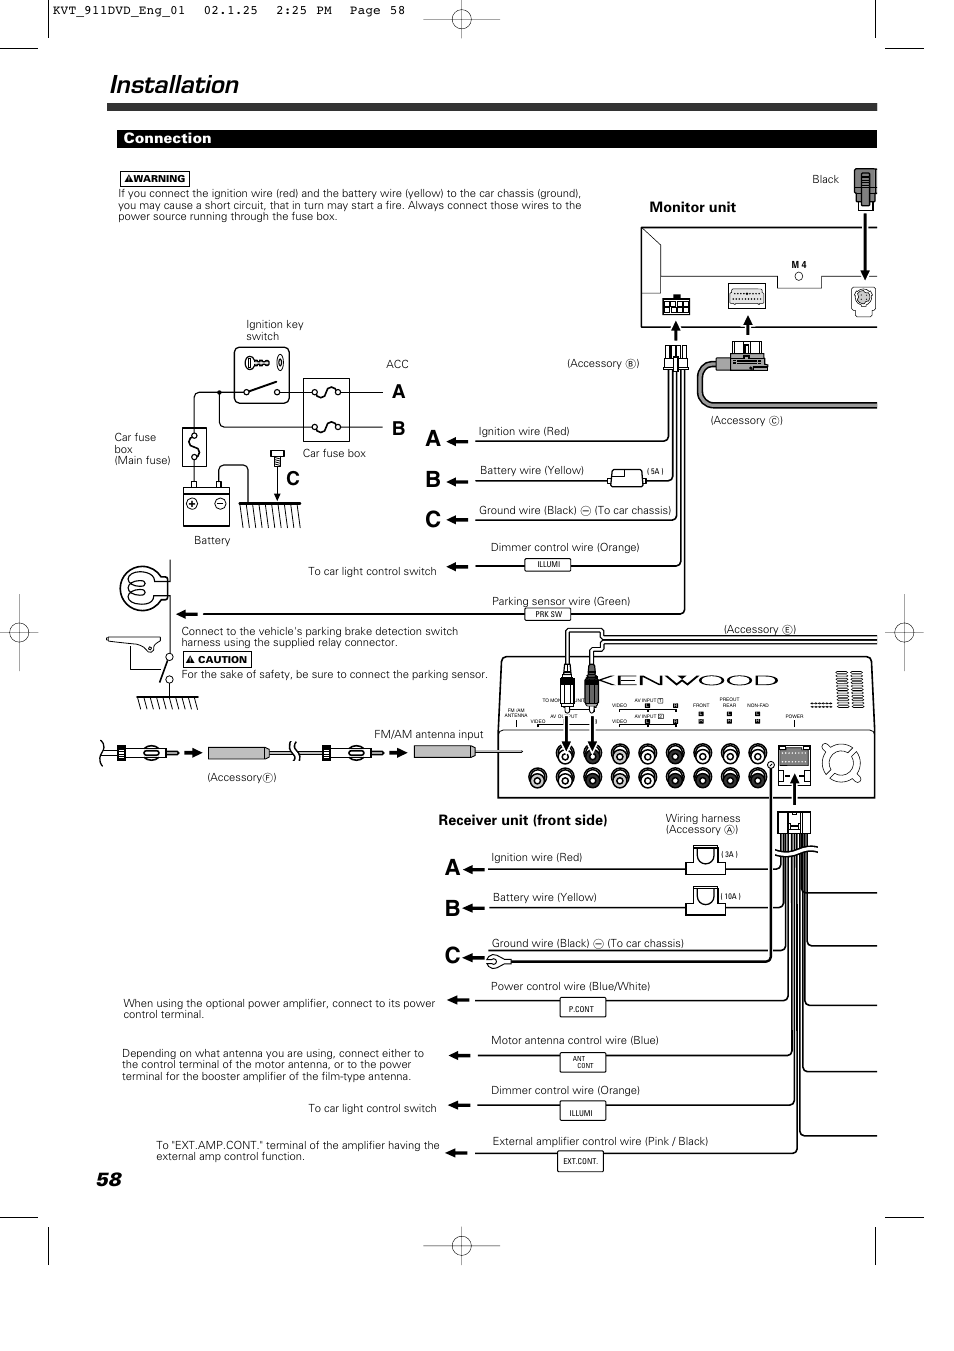 Kenwood deck wiring diagram wiring harness kenwood dnx570hd wiring diagram deck kenwood model kdc wiring diagram kenwood kdc 352u deck asfbconference2016